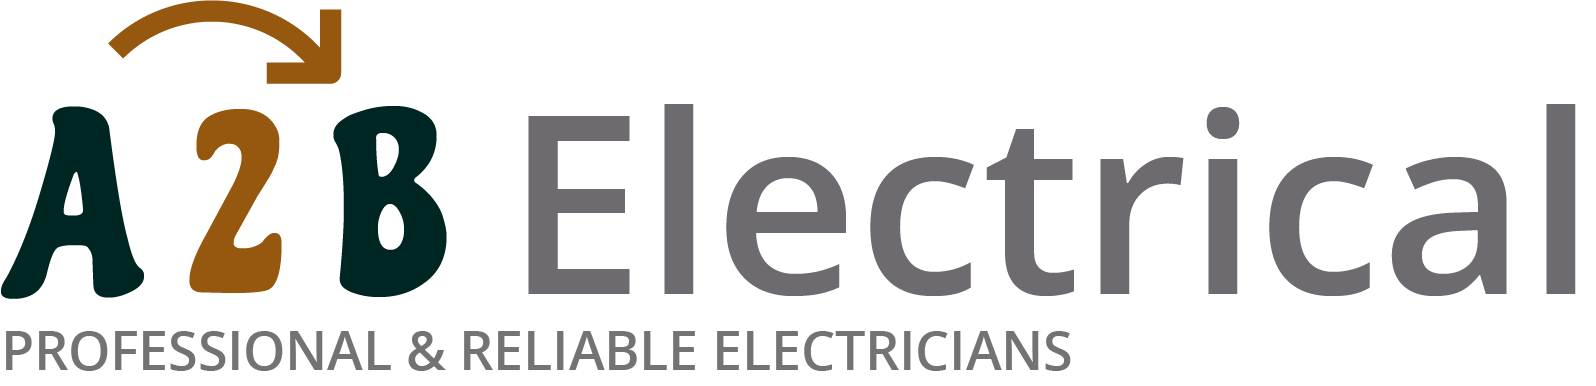 If you have electrical wiring problems in Romford, we can provide an electrician to have a look for you.